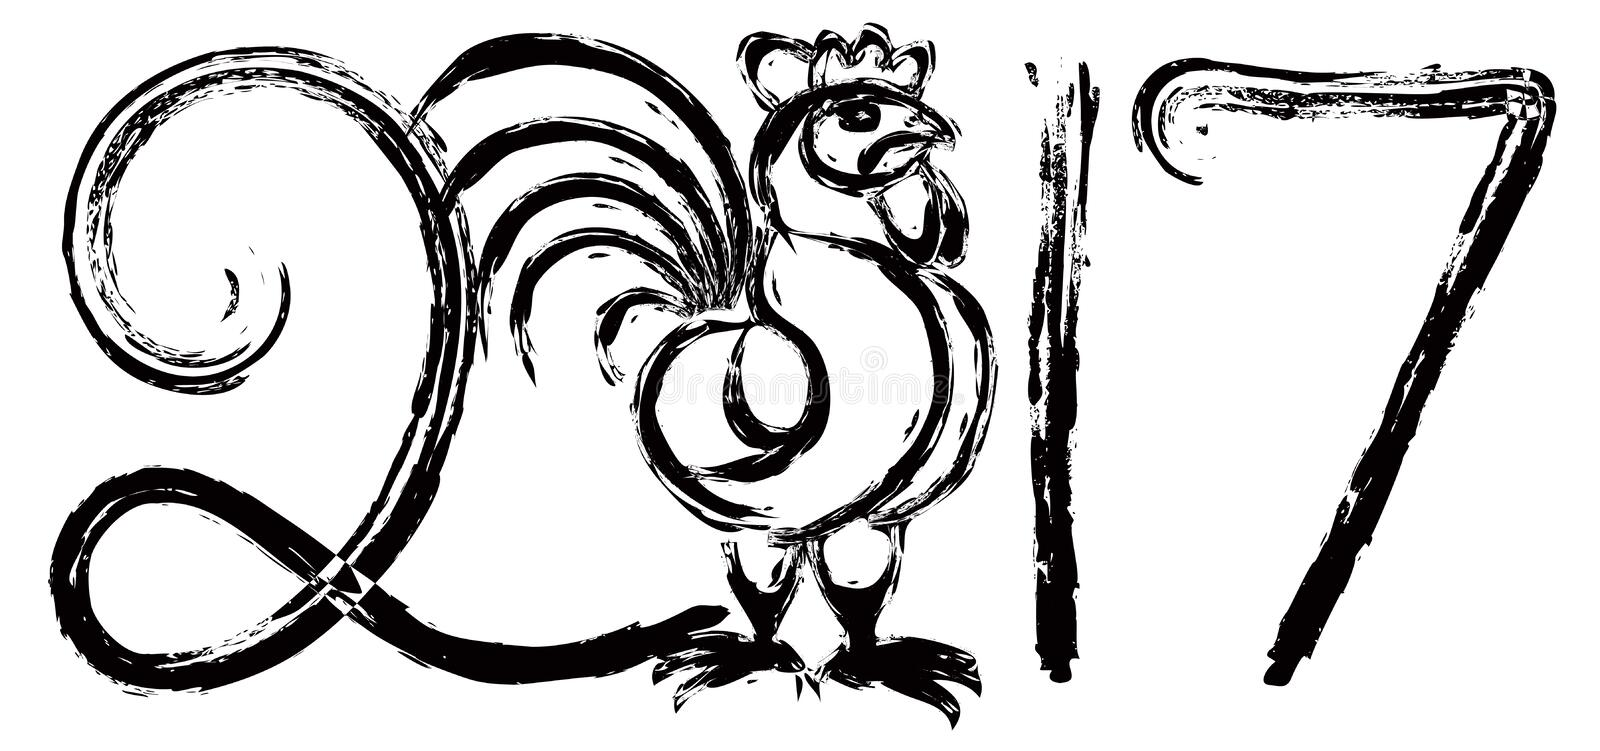 Chinese New Year Rooster Ink Brush Illustration royalty free illustration